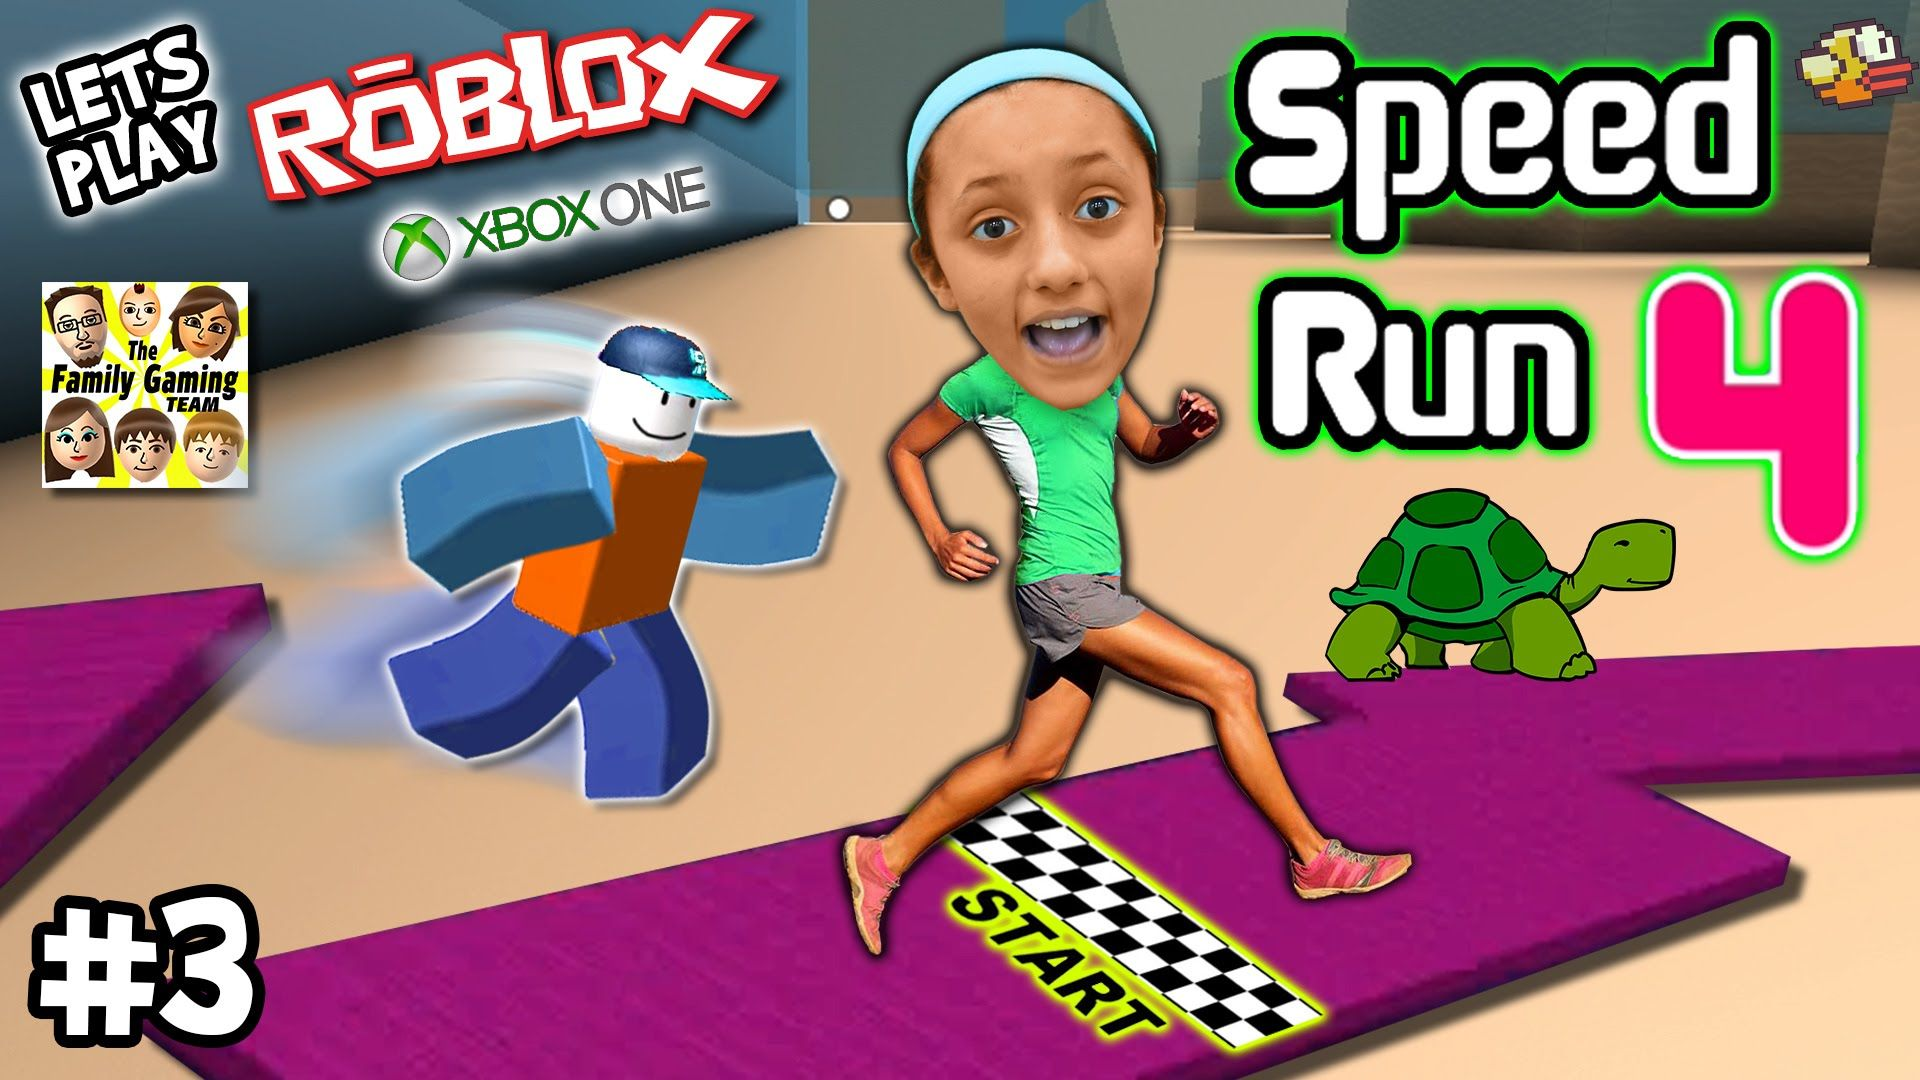 How To Run Fast On Roblox